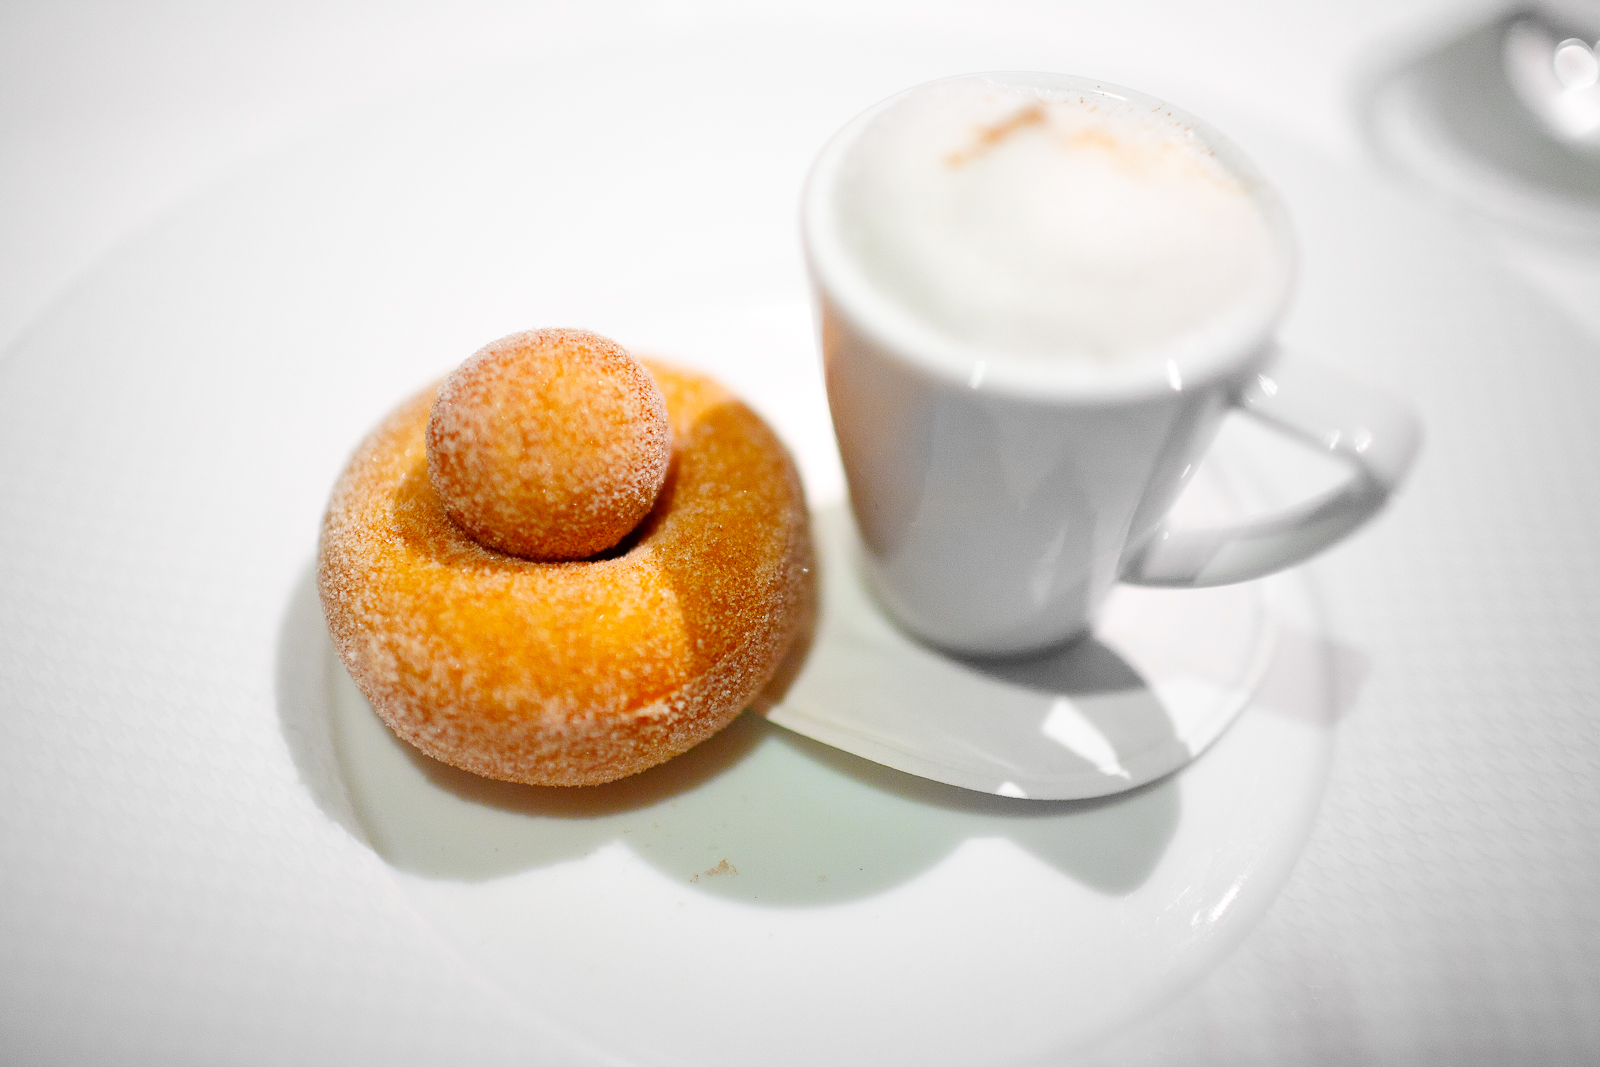 13th Course: Coffee and Doughnuts